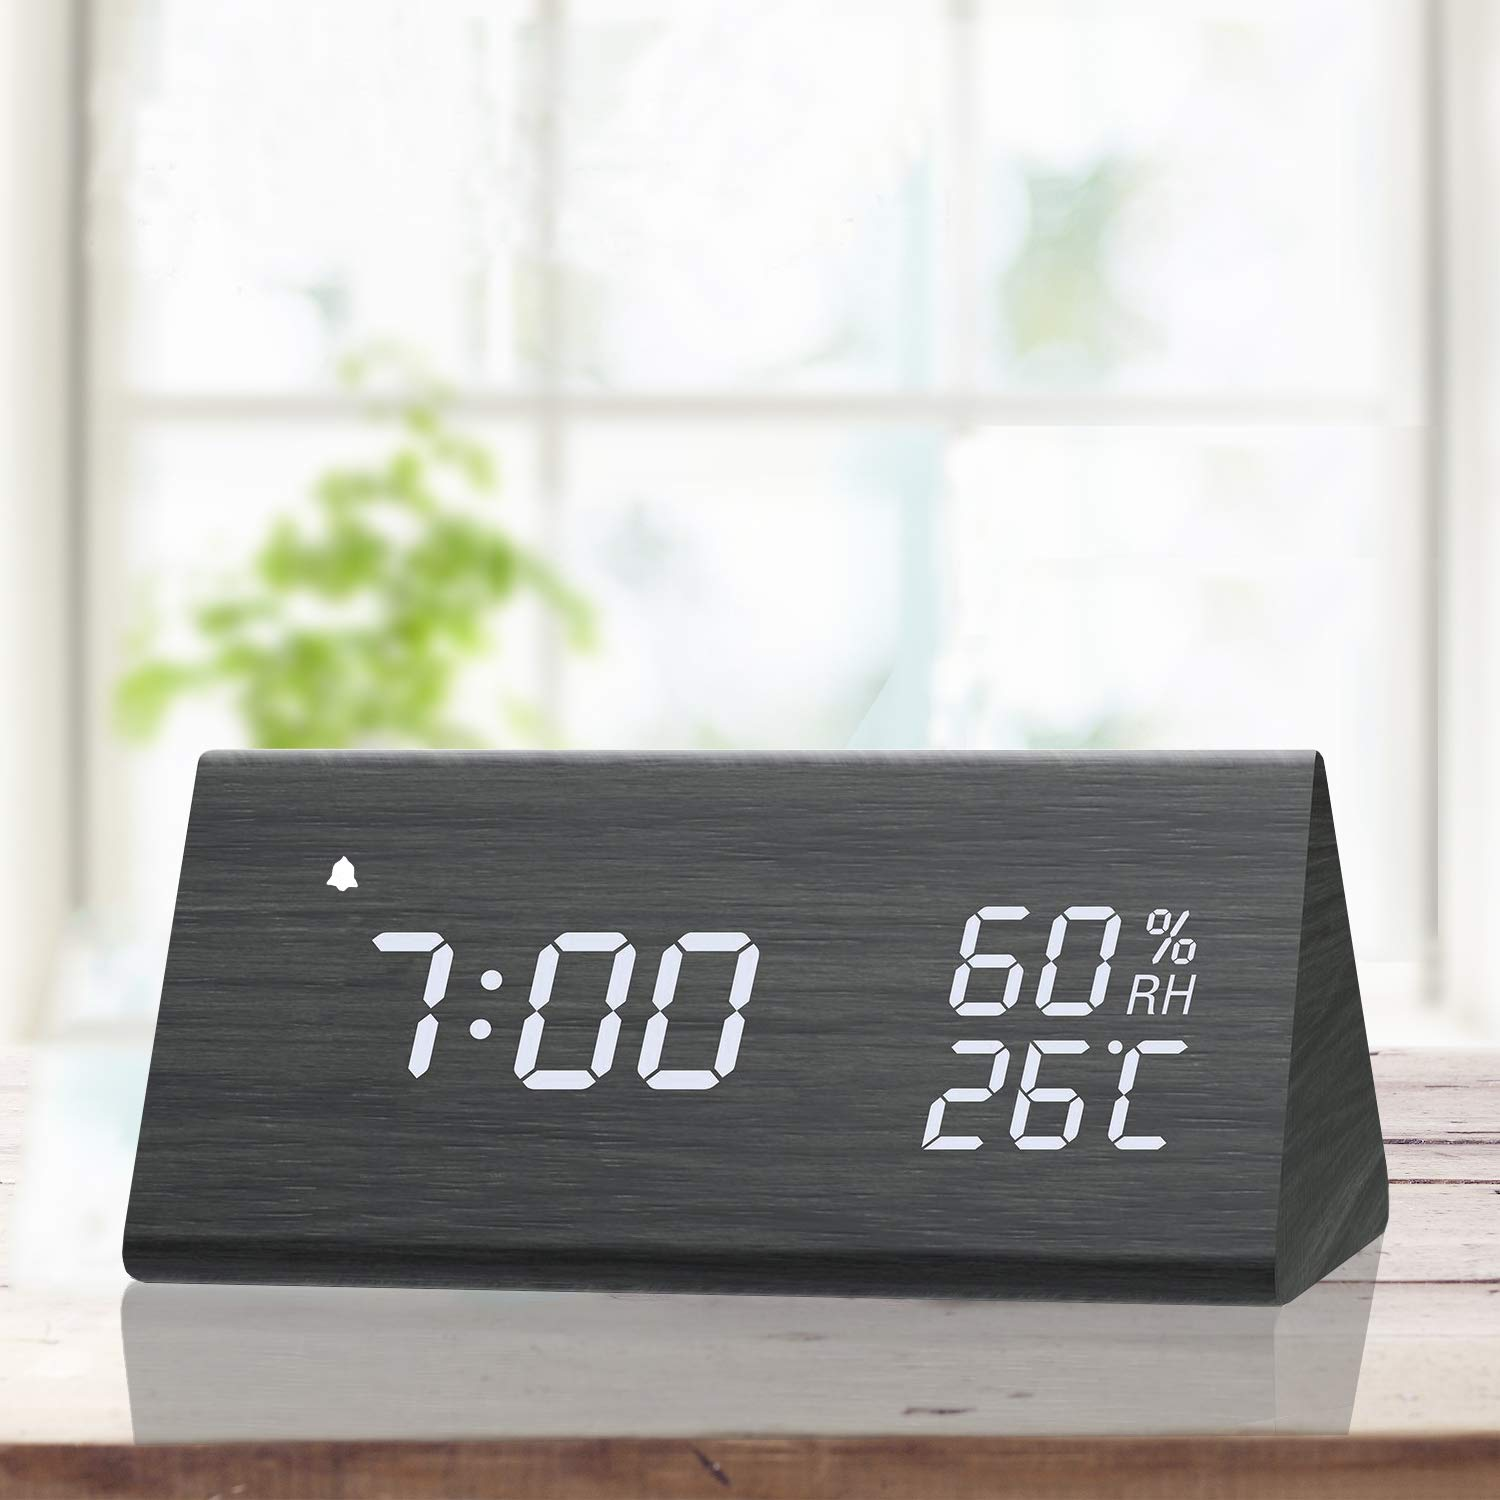 Digital Alarm Clock, with Wooden Electronic LED Time Display, 3 Alarm  Settings, Humidity & Temperature Detect, Wood Made Electric Clocks for  Bedroom, ...